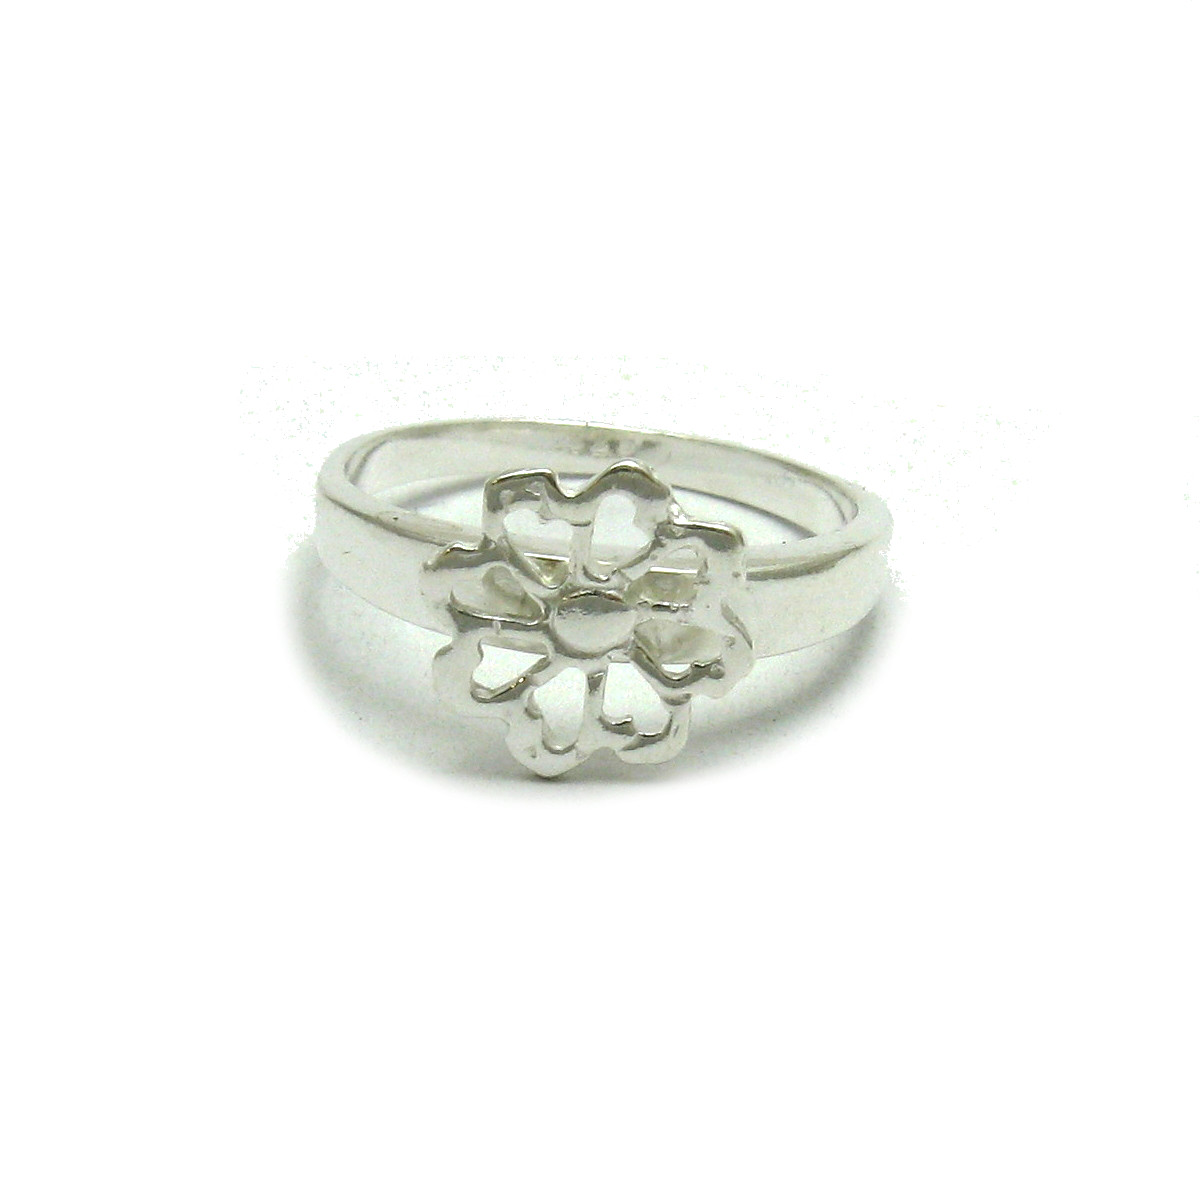 Silver ring - R001675